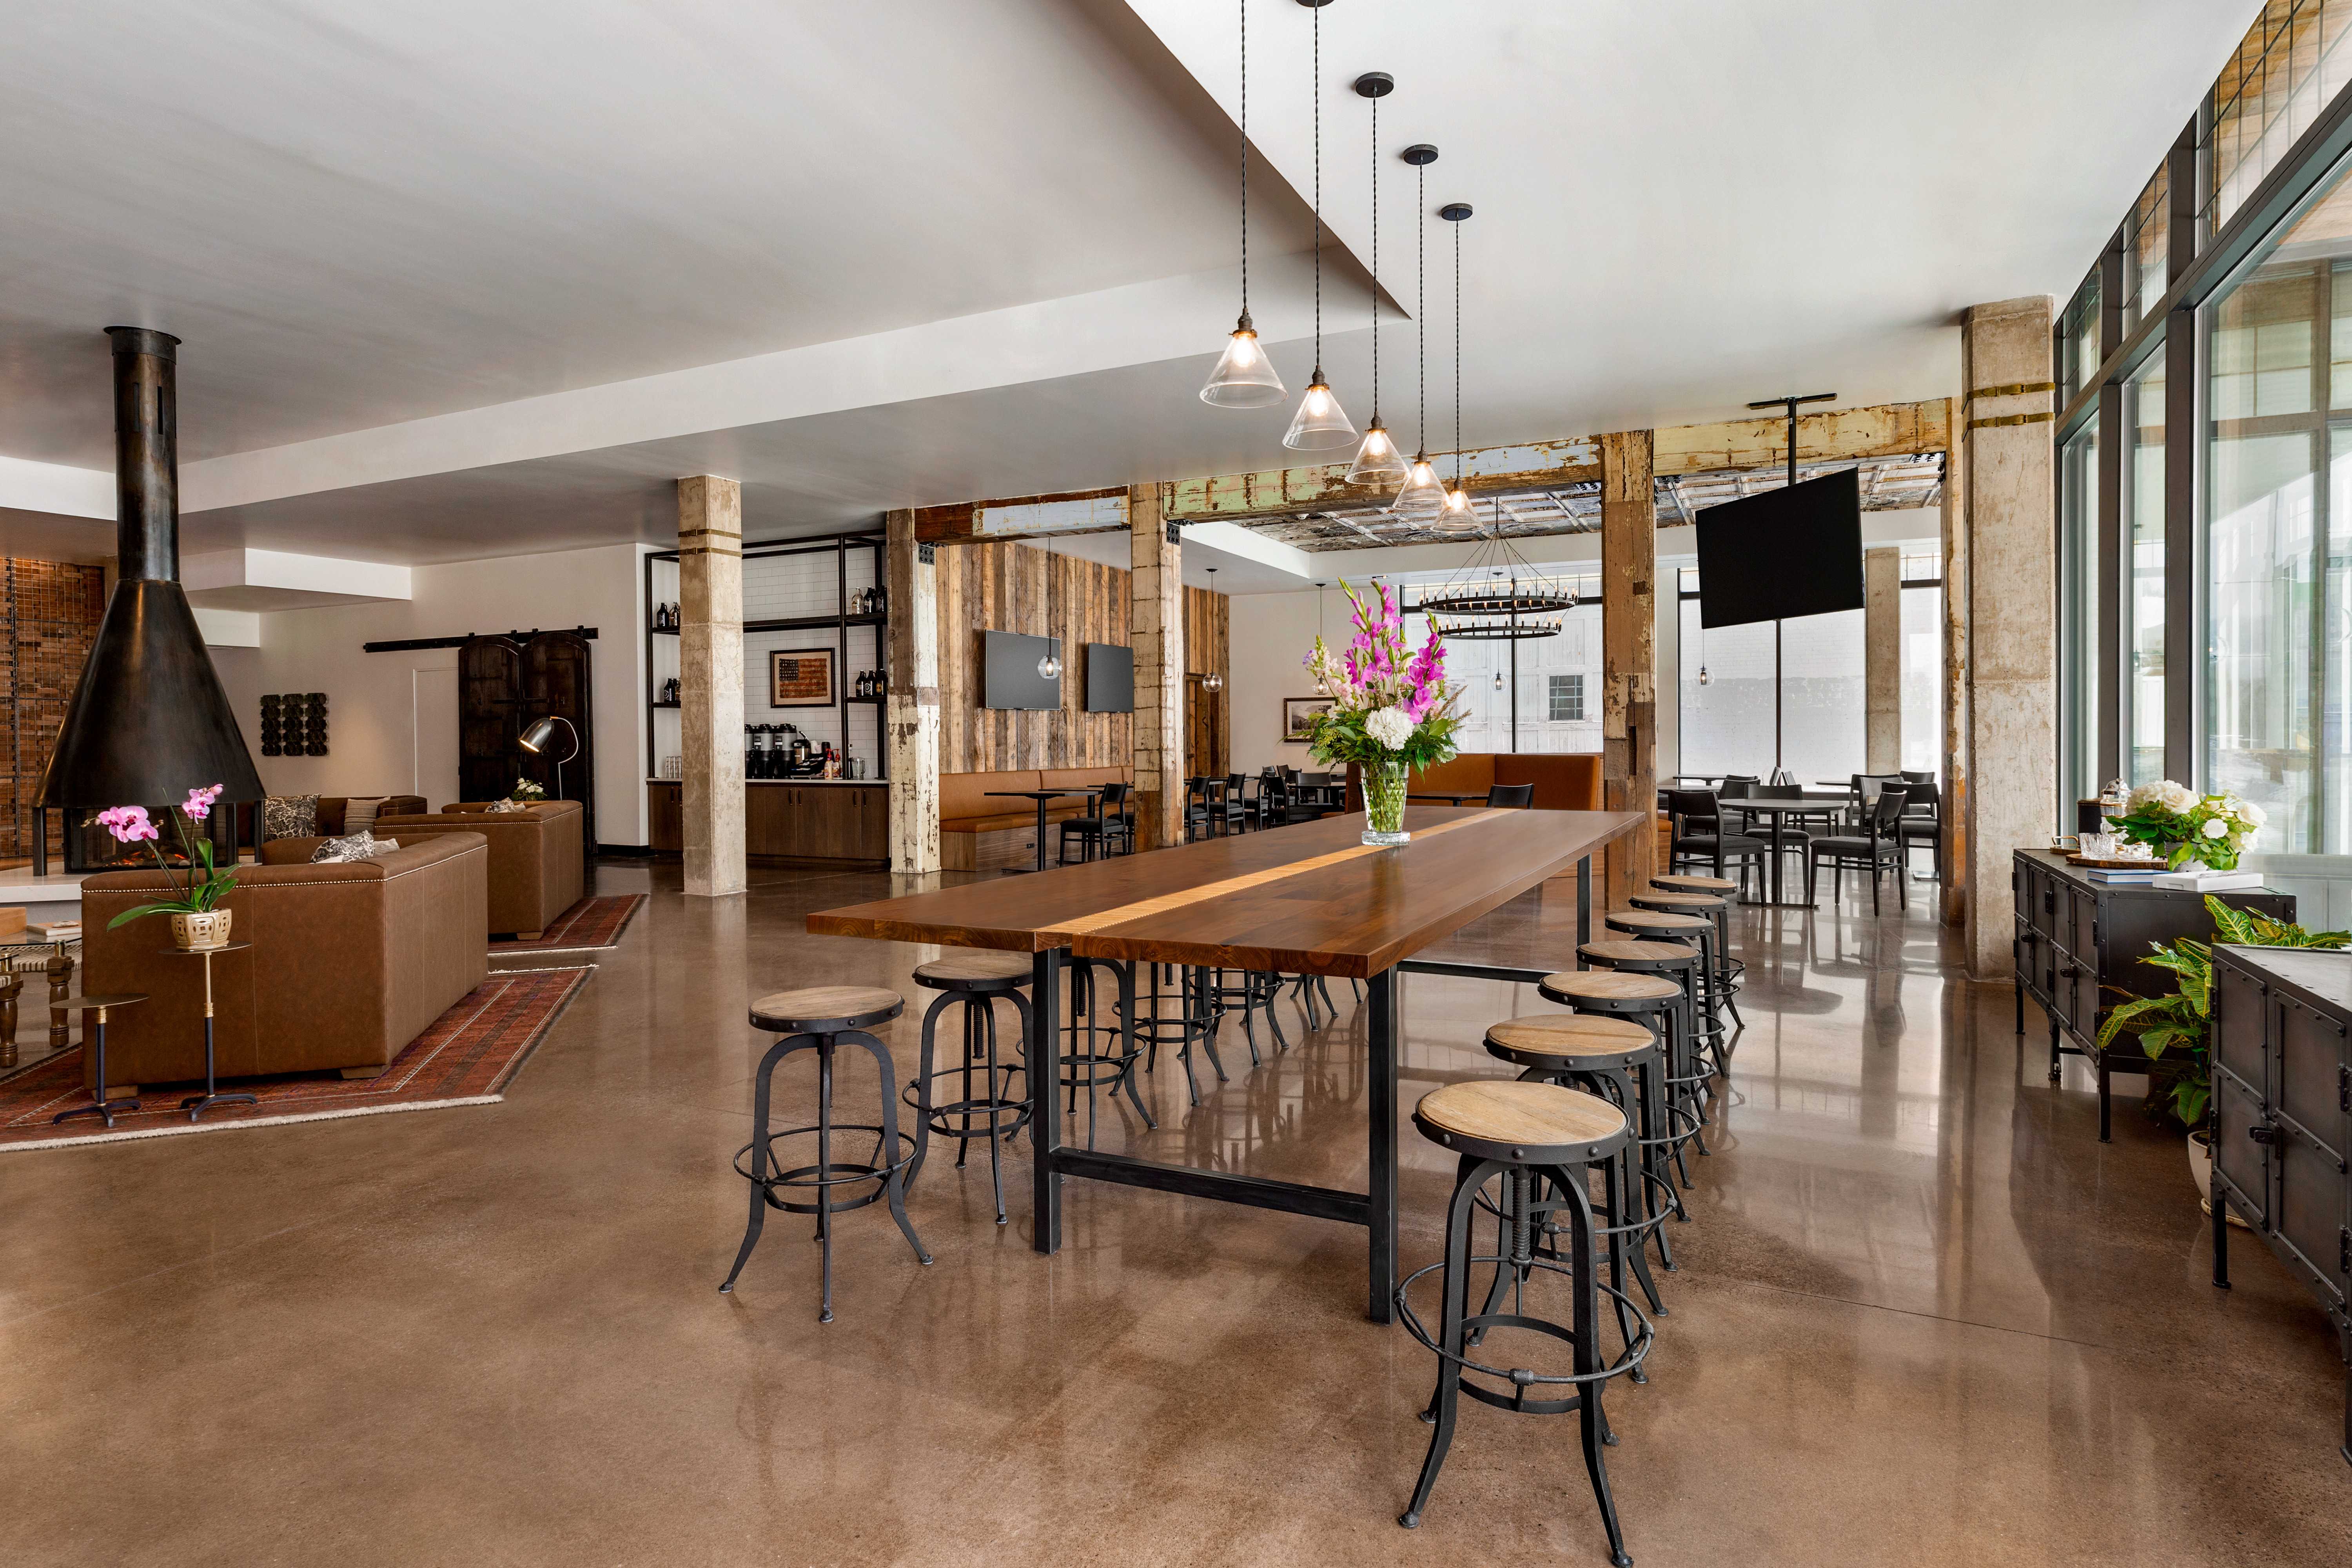 Guest Post: Top 4 Reasons to Meet in Missoula's Newest Hotel